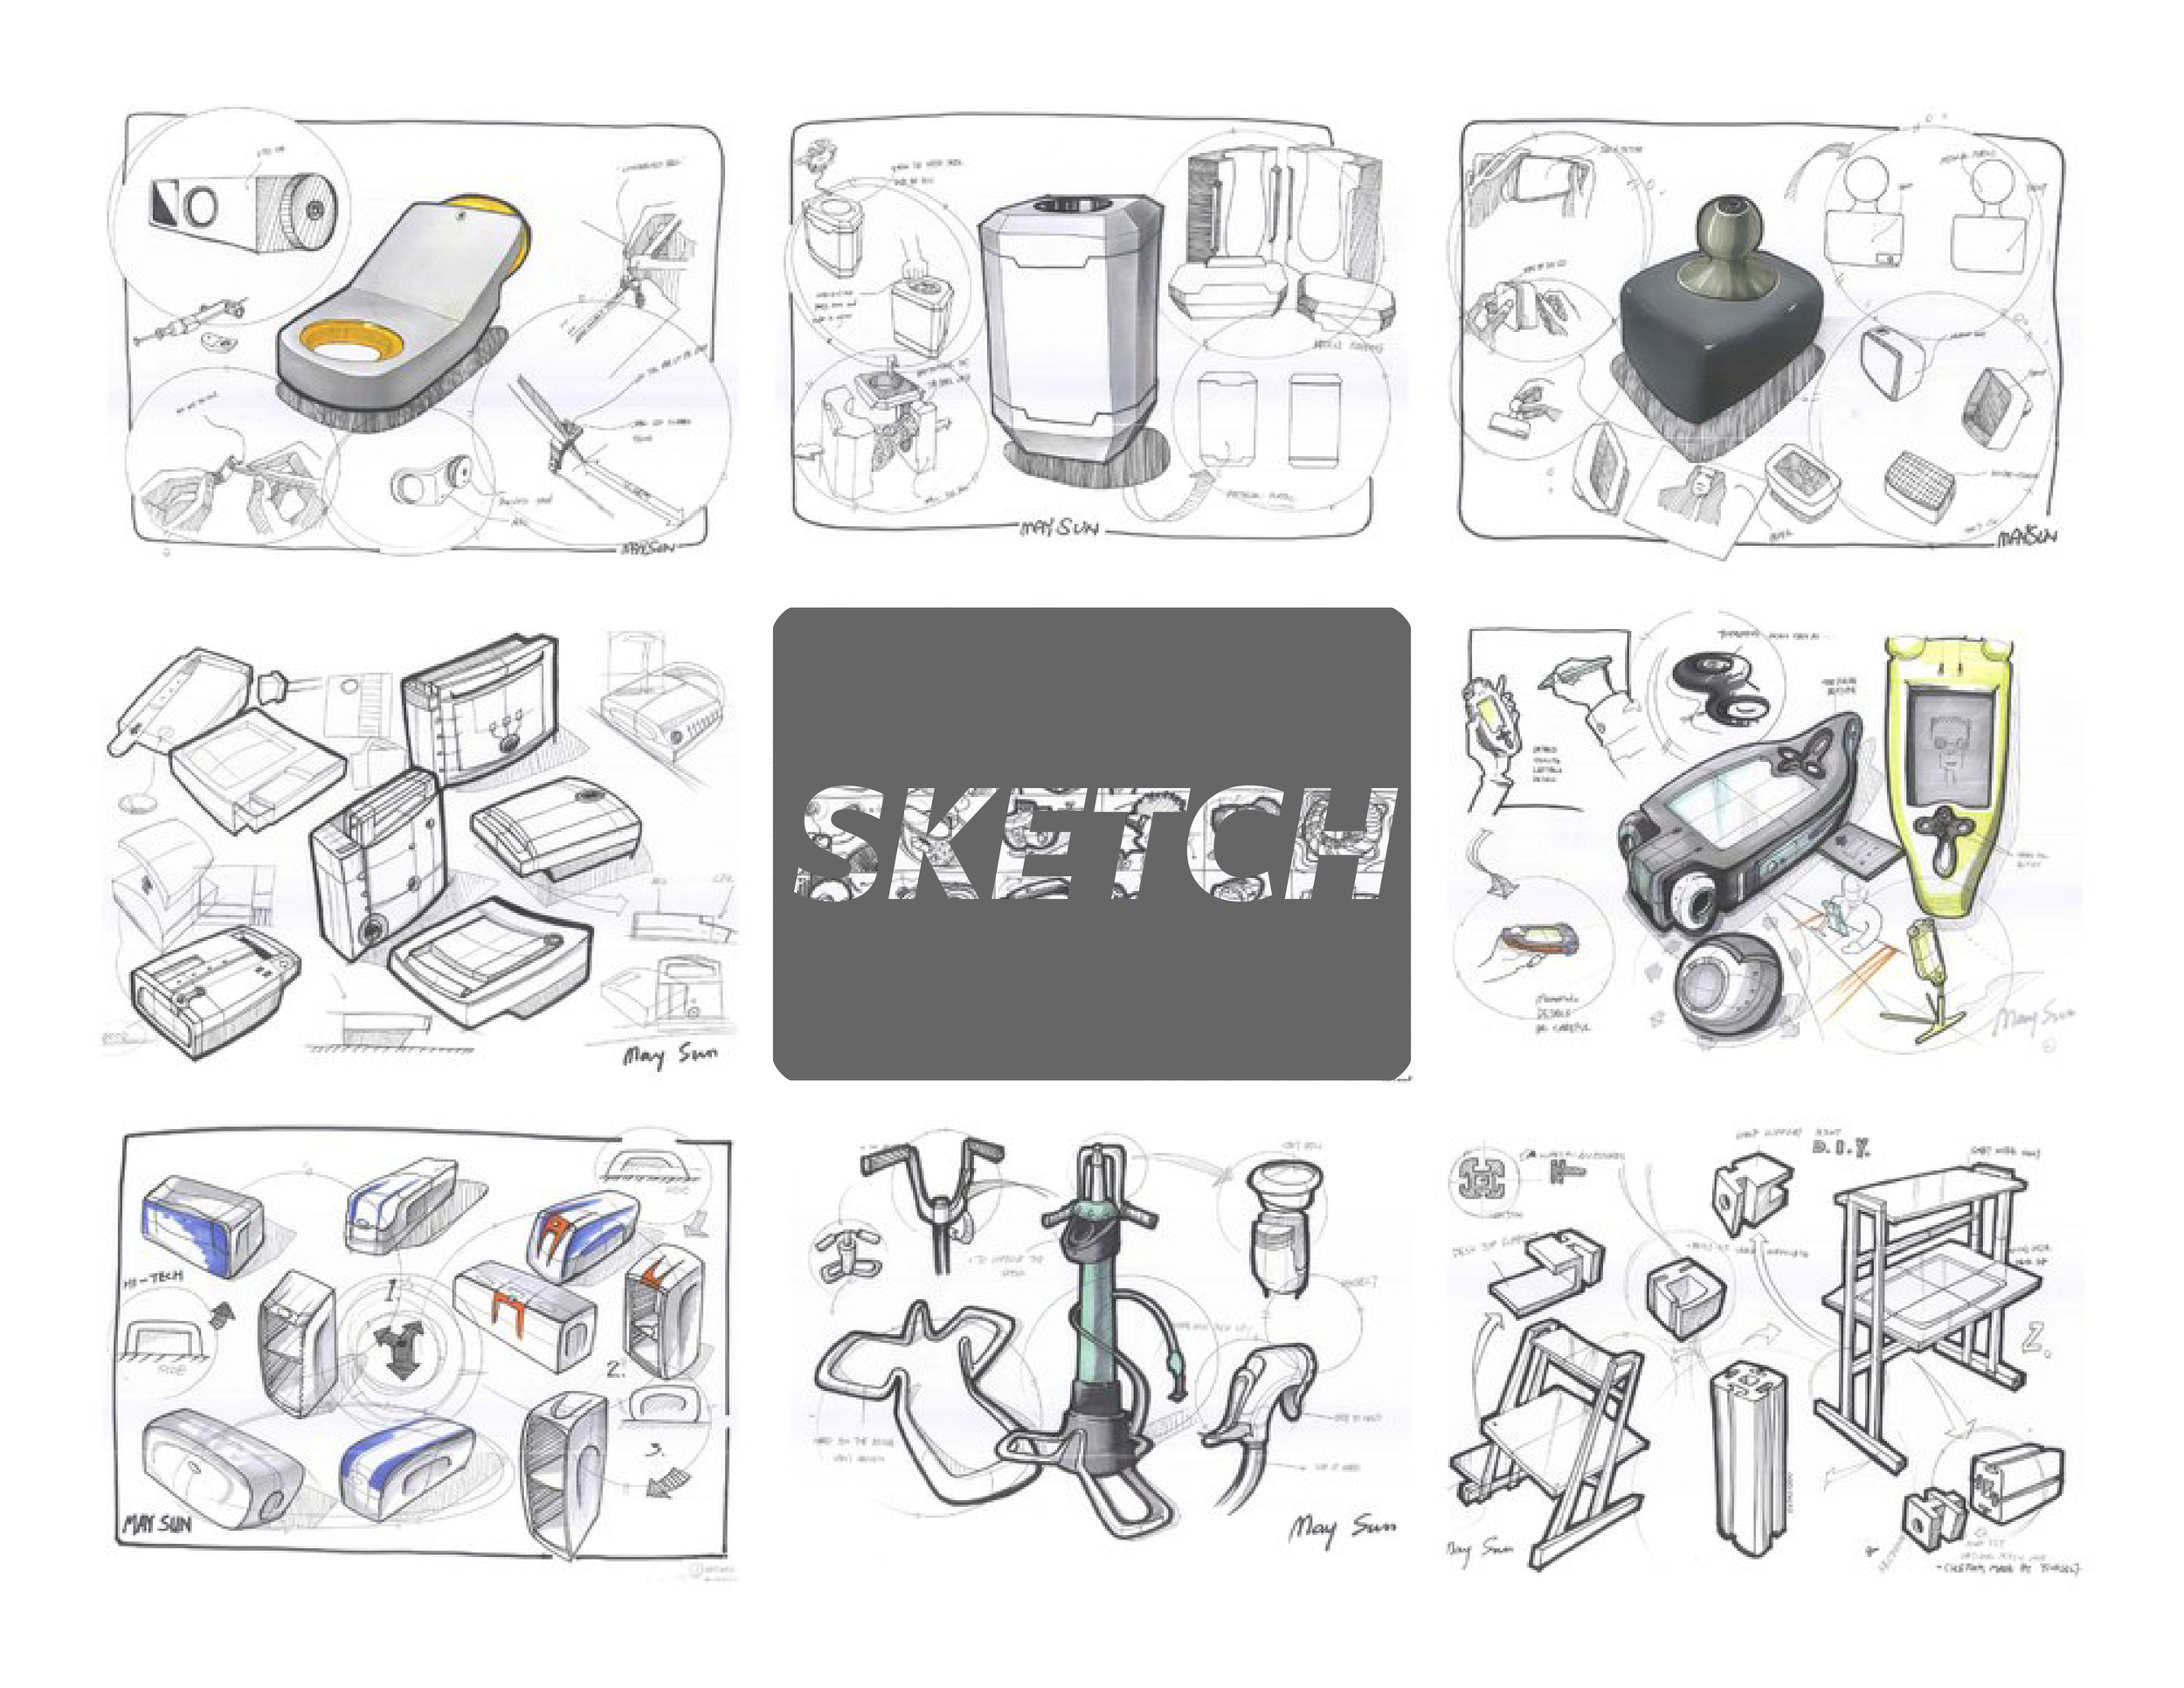 PRODUCTS SKETCH